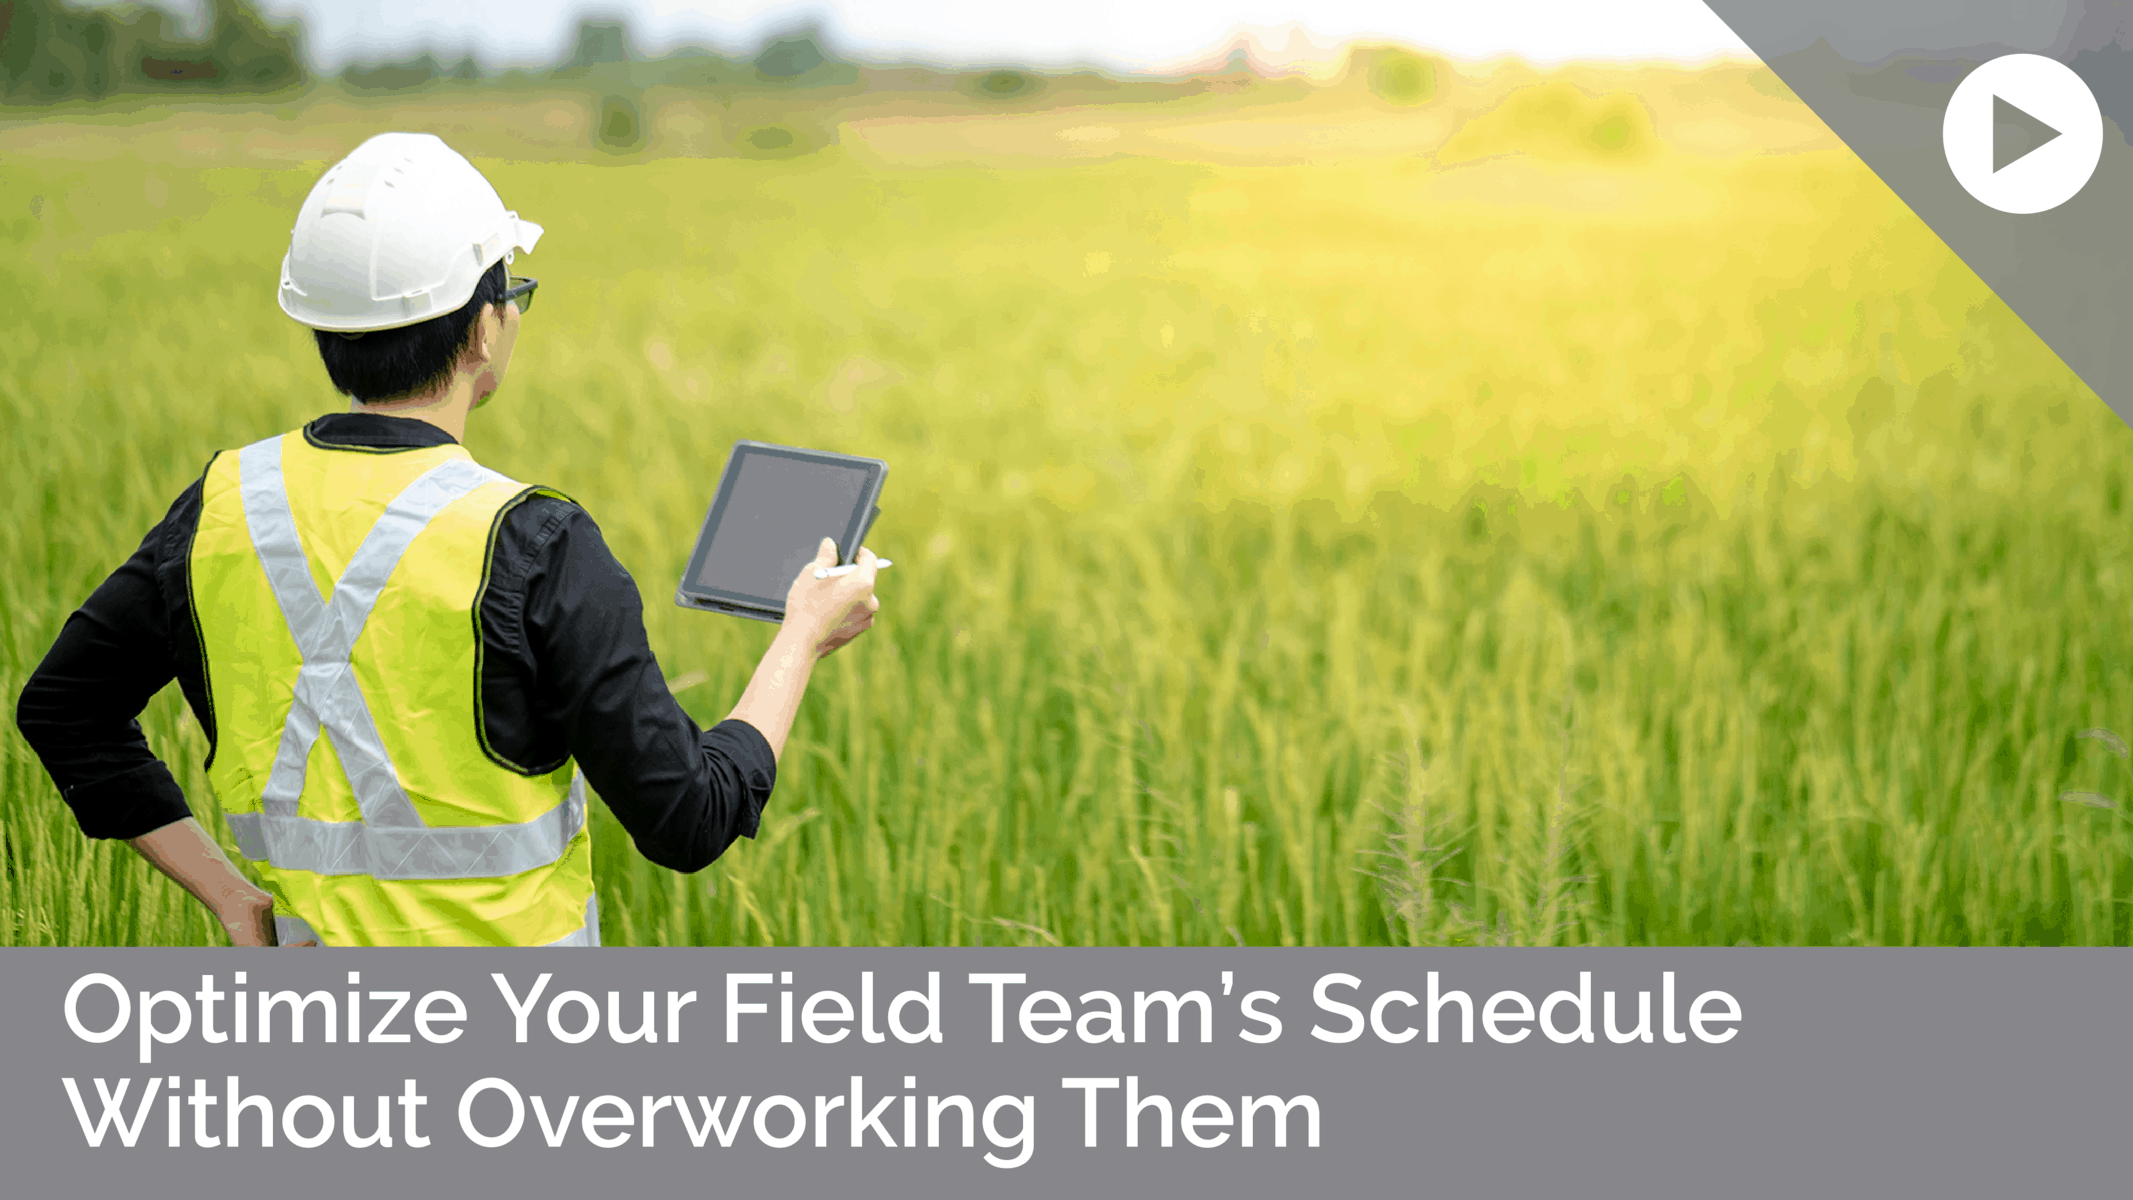 Optimize Your Field Team's Schedule Without Overworking Them